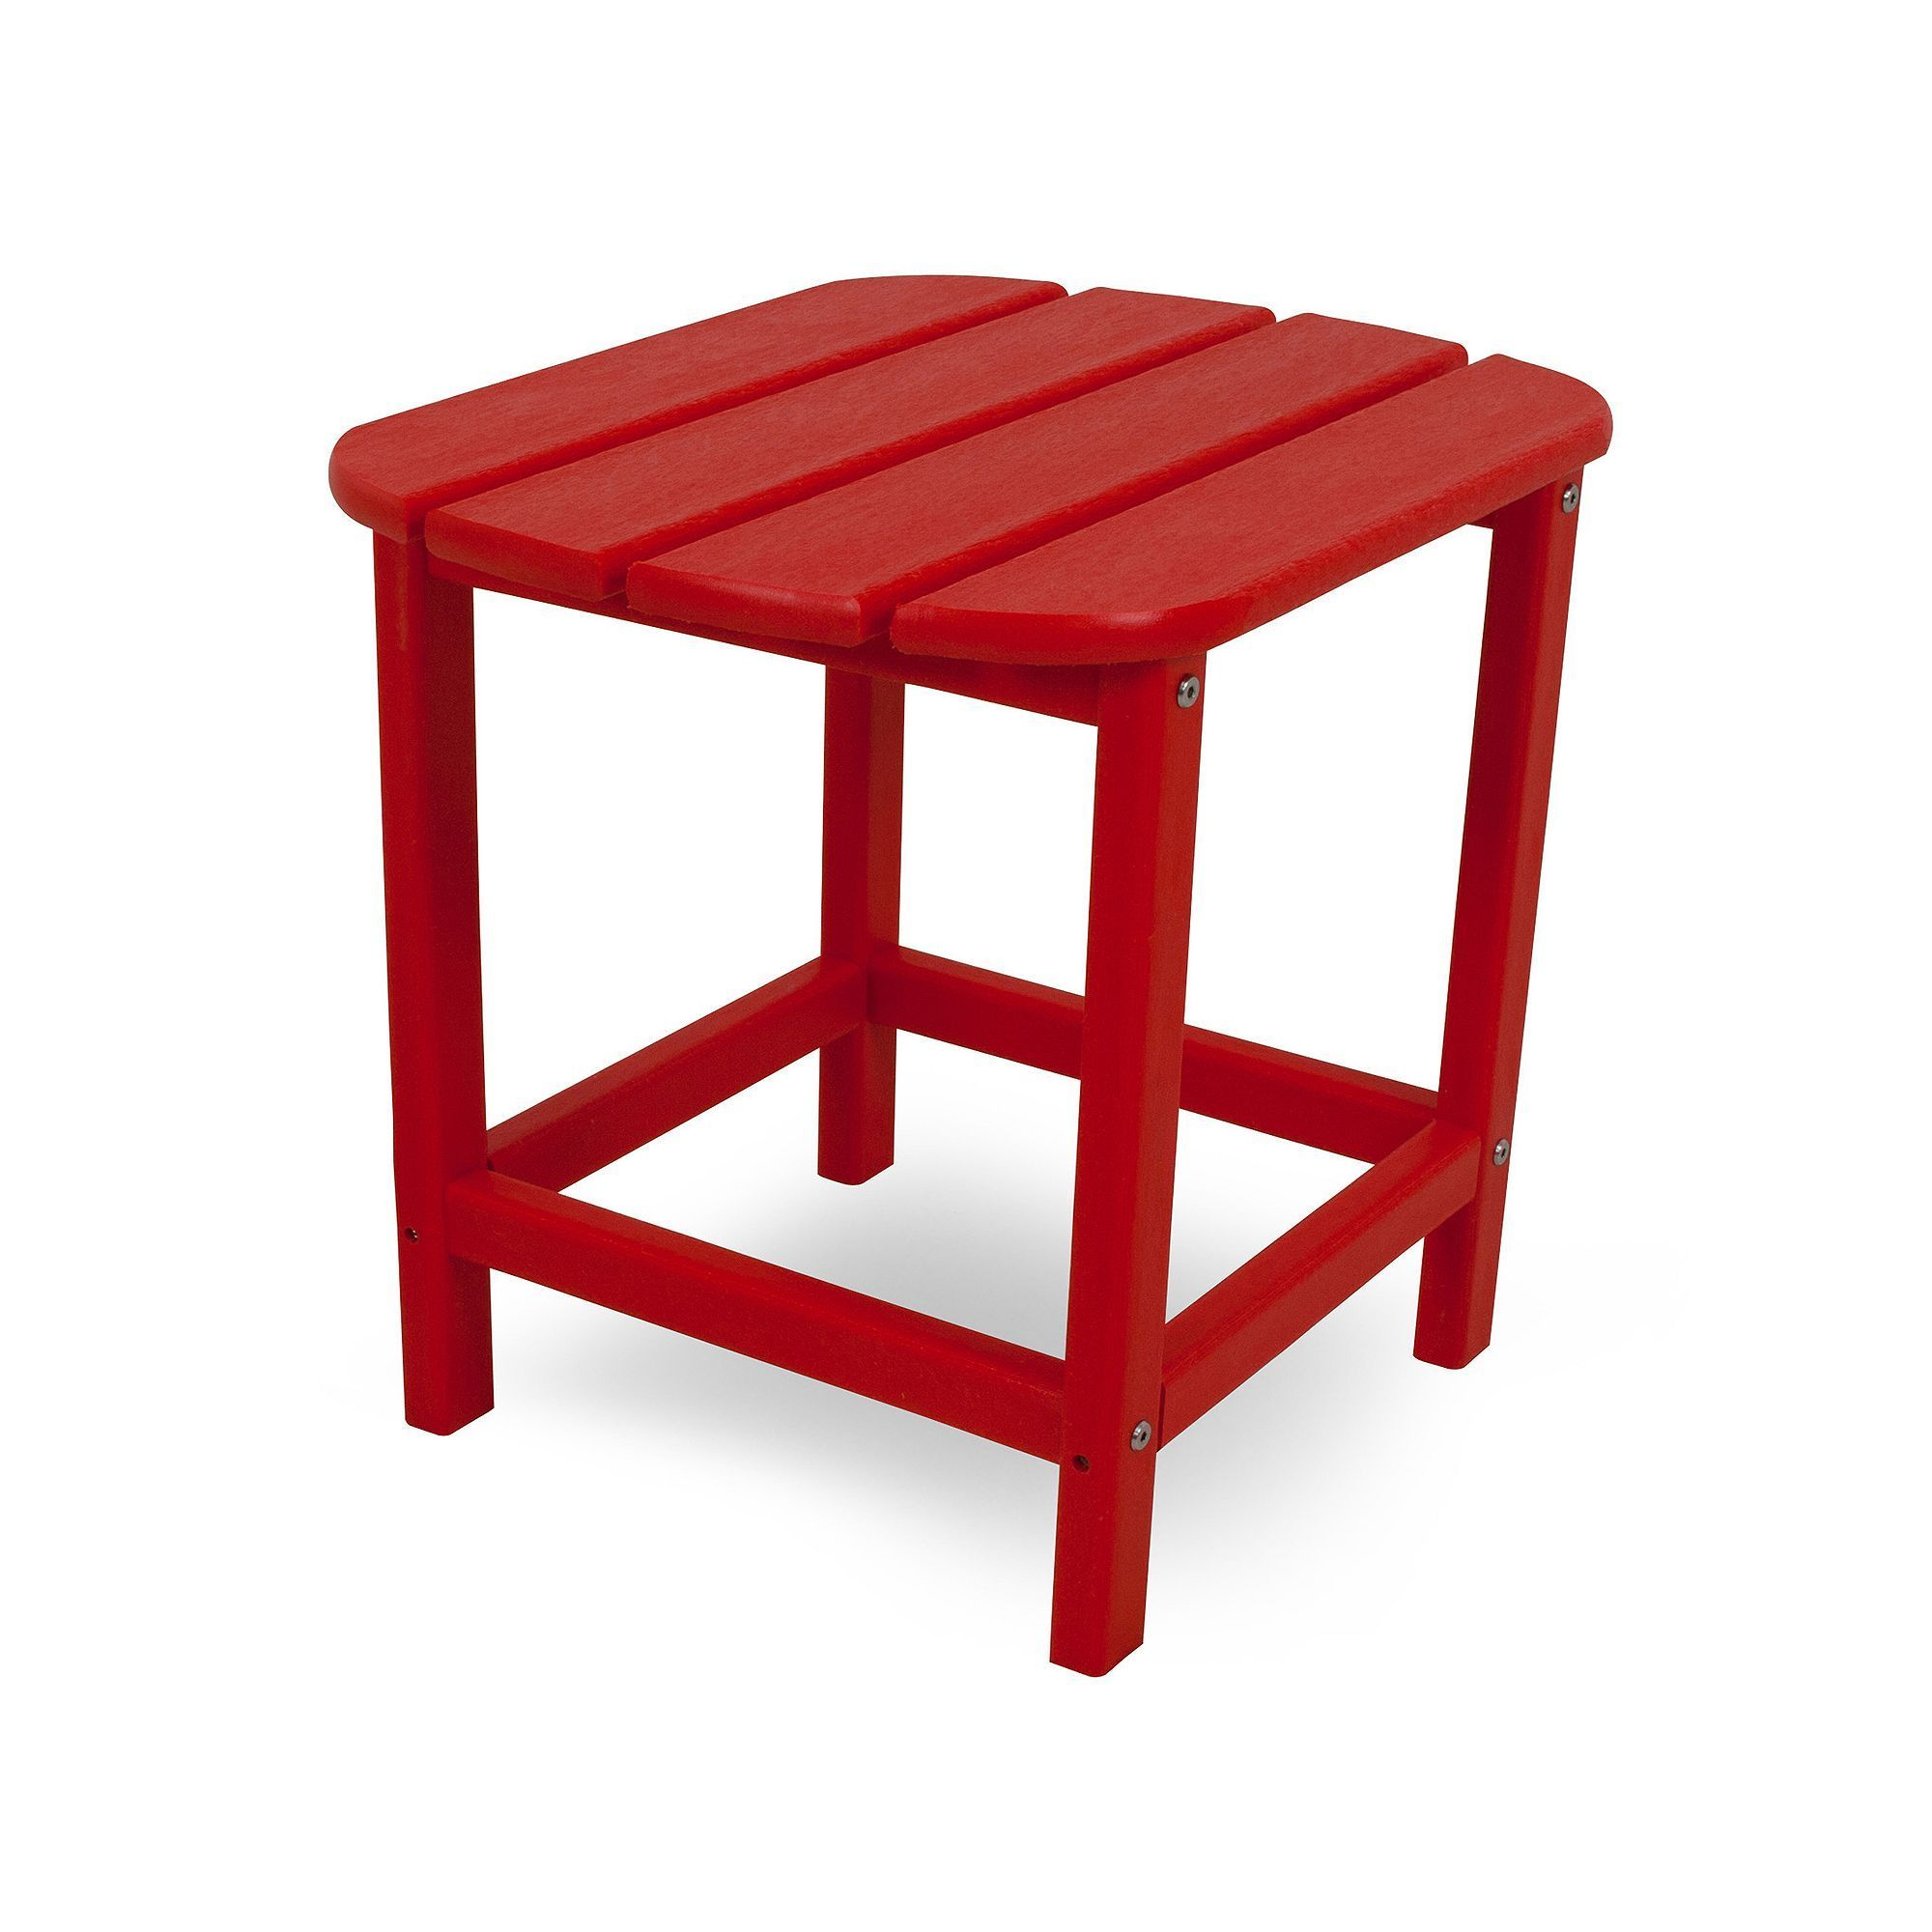 polywood south beach outdoor side table products red accent polywooda target chairside purple tiffany style lamps telephone and seat home decor tripod dark wood trestle dining